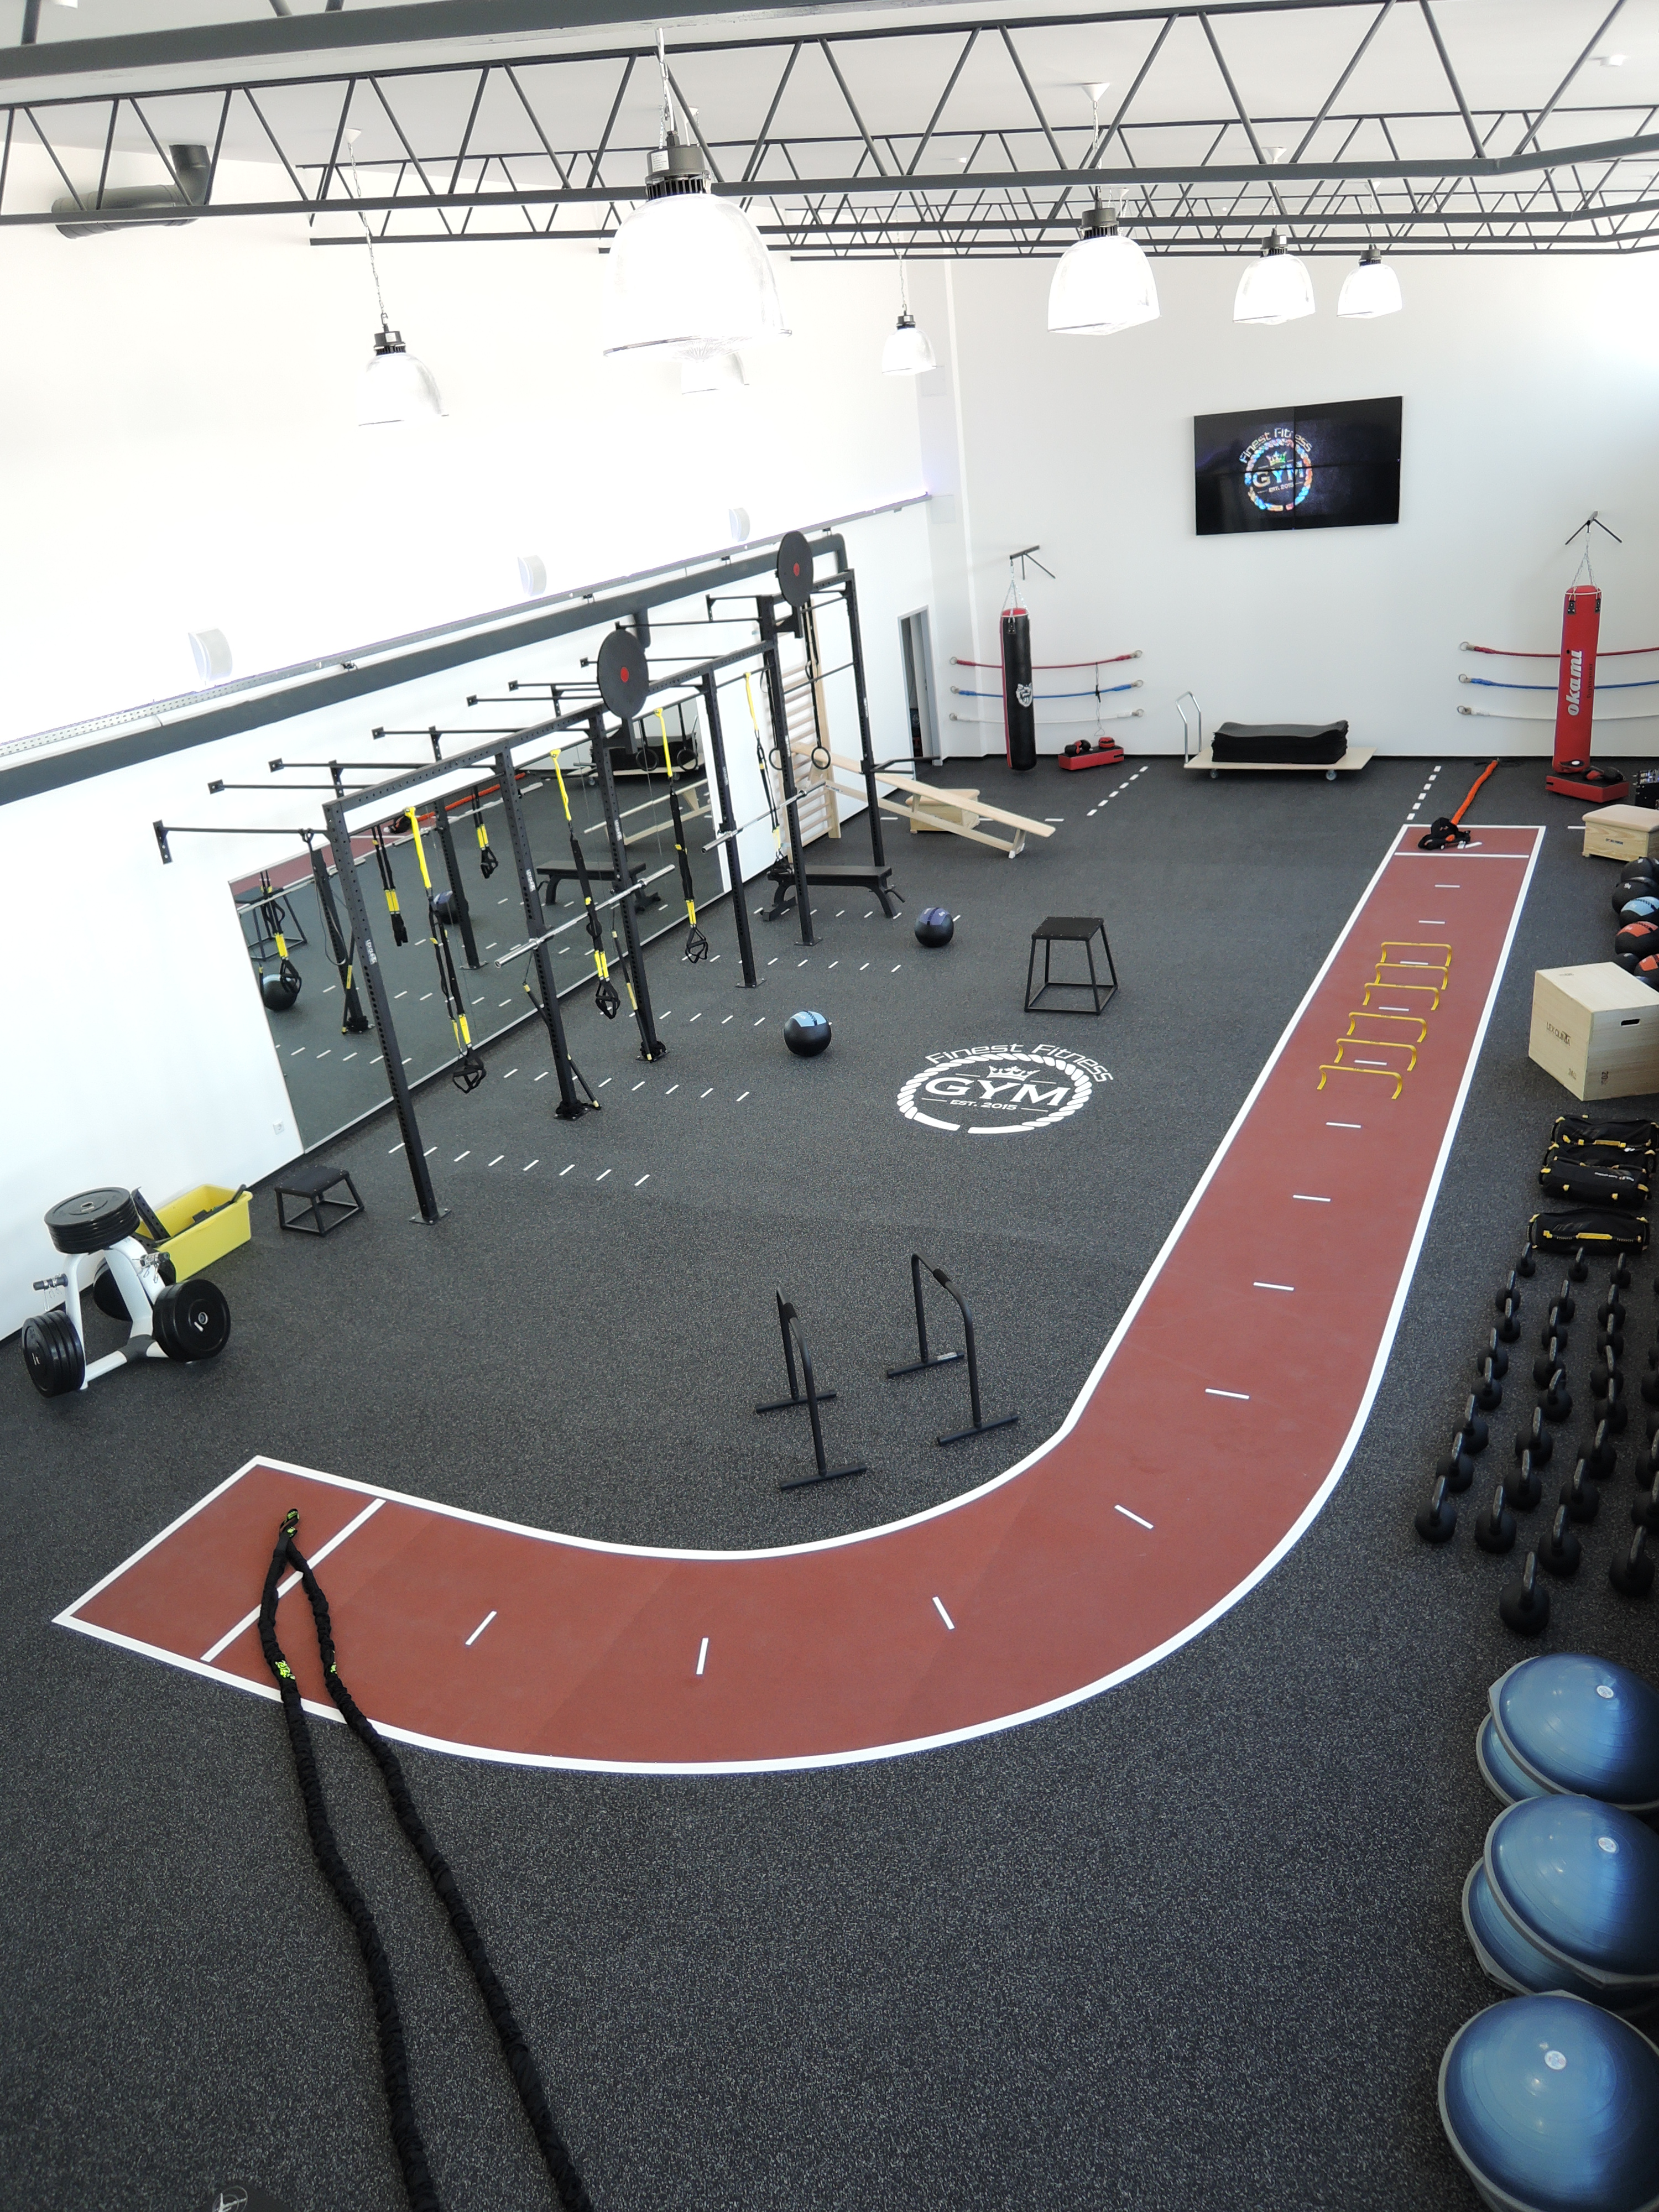 Finest_Fitness_GYM_03Finest Fitness GYM Weinheim